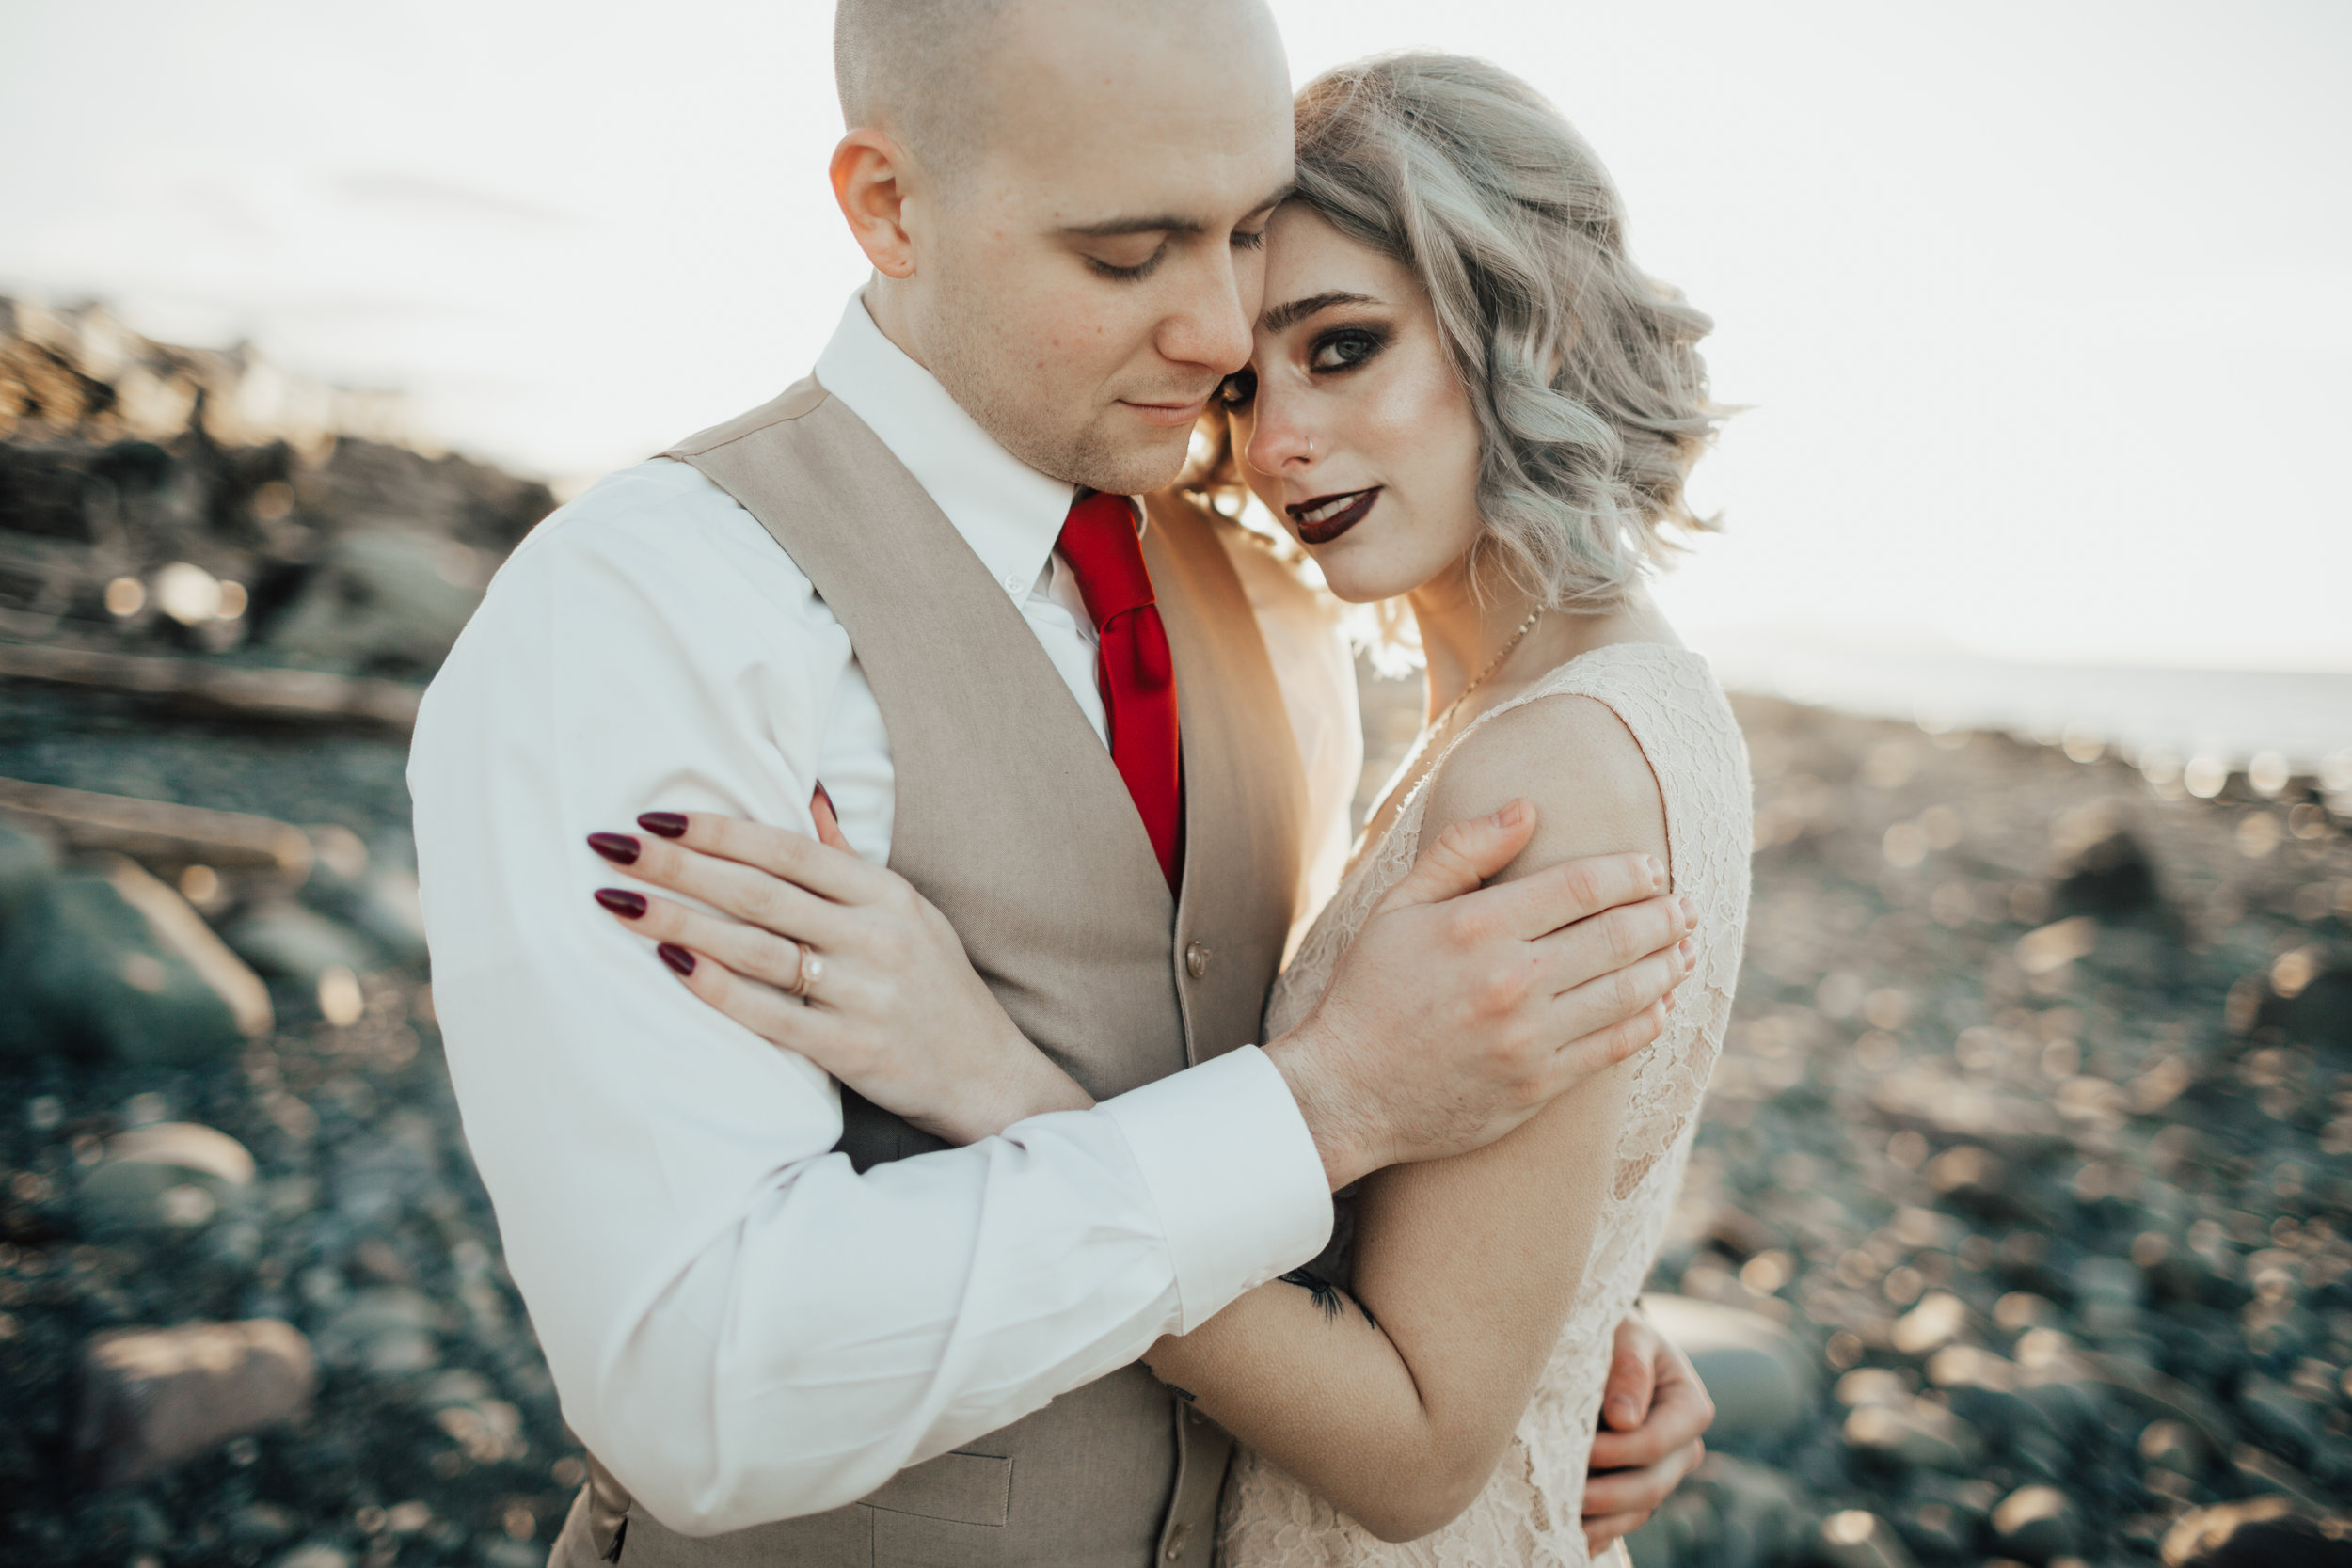 Port Angeles-PNW-Sequim-Portrait-wedding-elopement-photographer-kayladawnphoto-kayla dawn photography-olympic peninsula-portraiture96.jpg